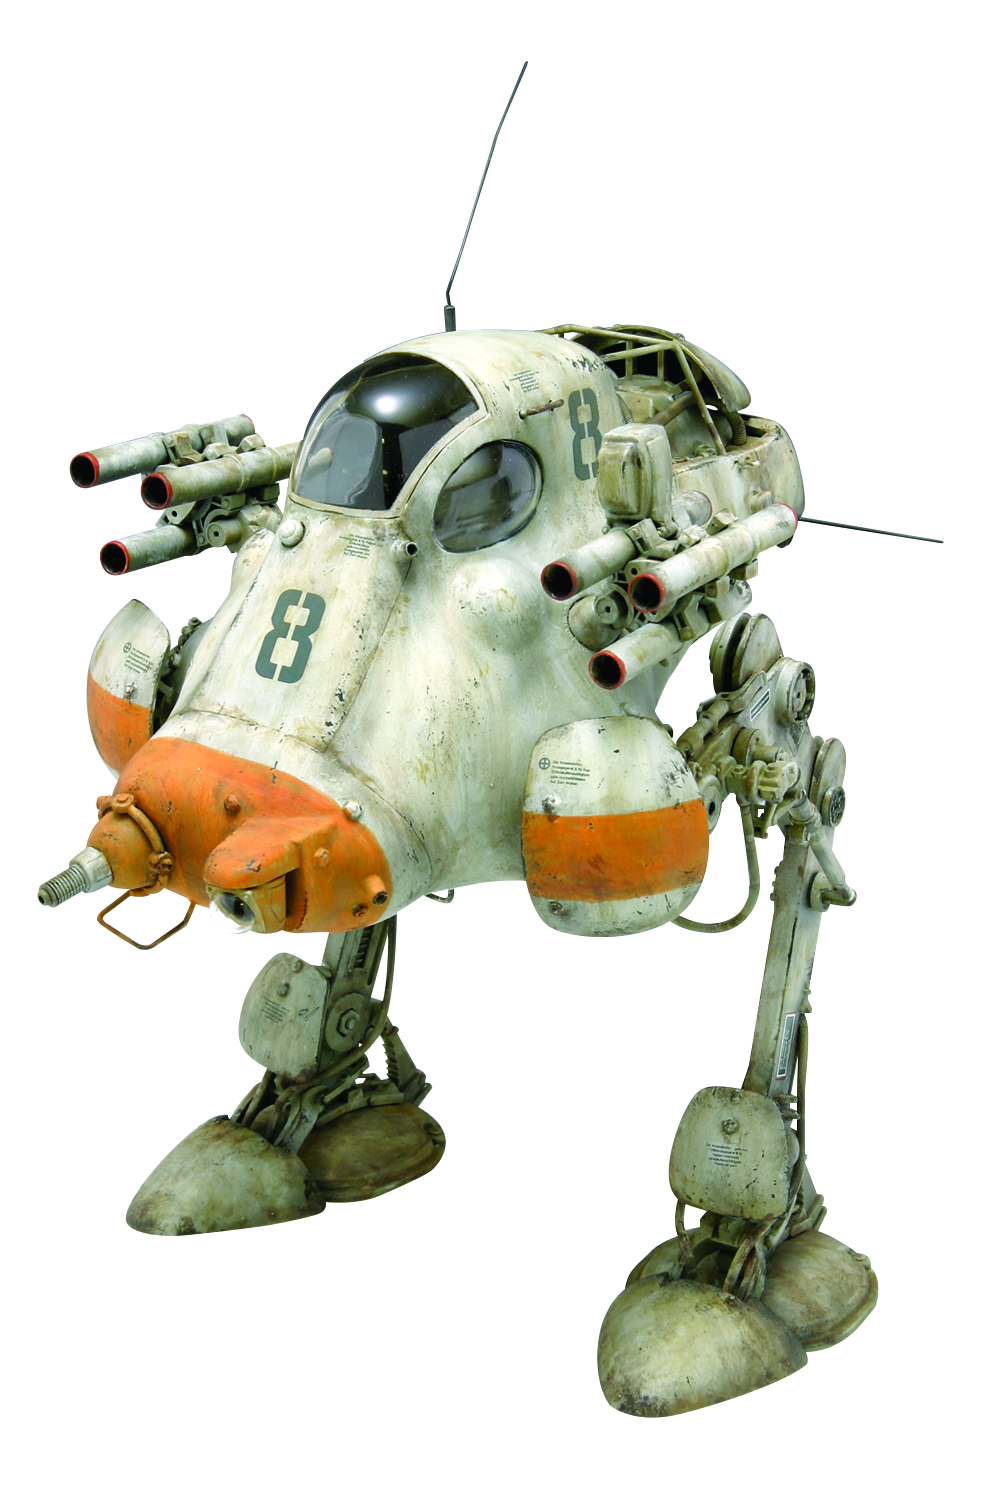 SUPER JERRY MK-033 MODEL KIT